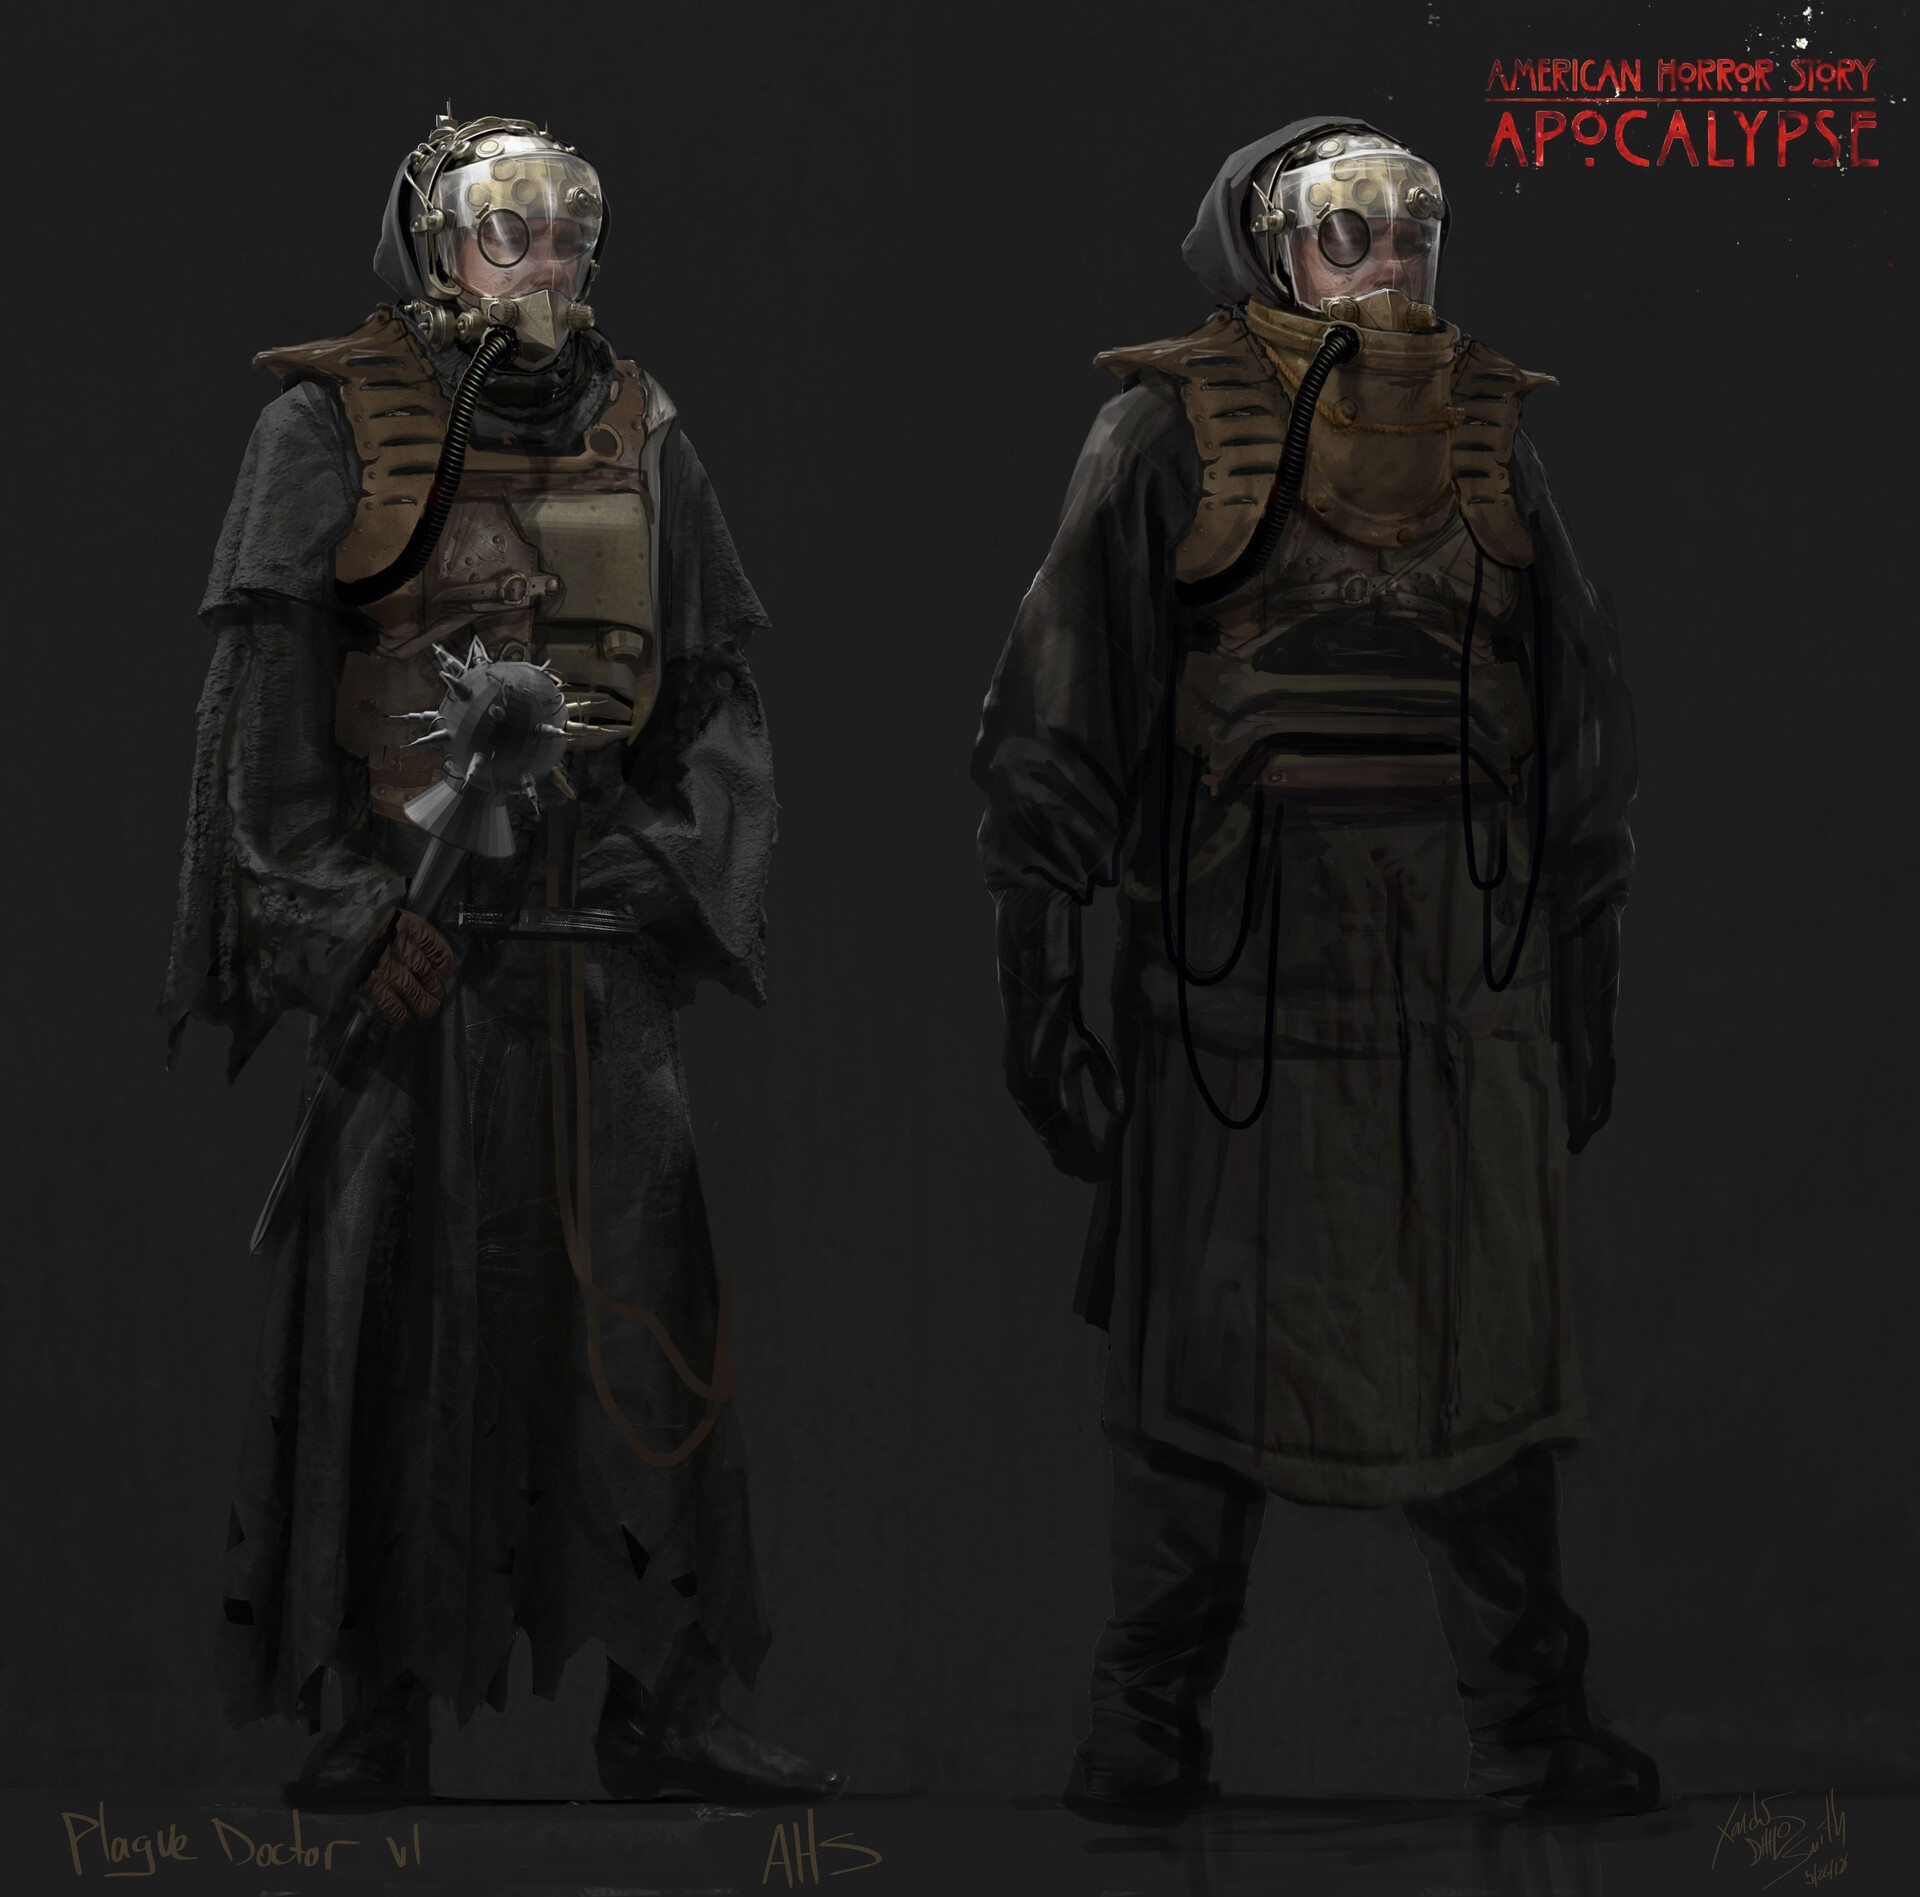 Artstation American Horror Story Apocalypse Costume Illustrations And 3d Printed Final Mask Xander Smith